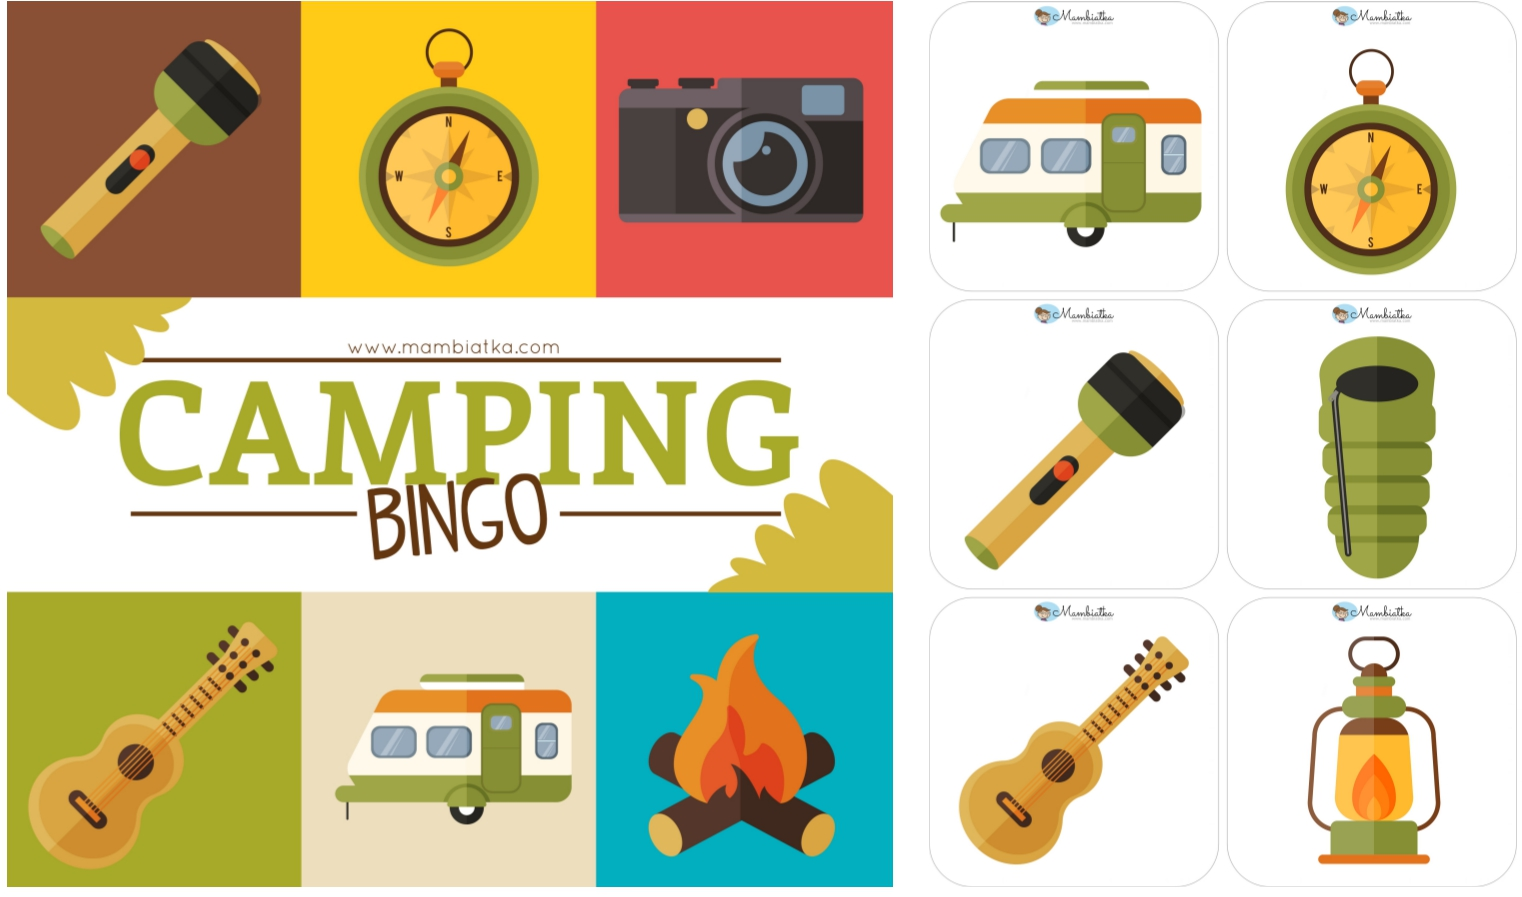 BINGO Camping Flash Cards Word And Vocabulary Poster Available Here